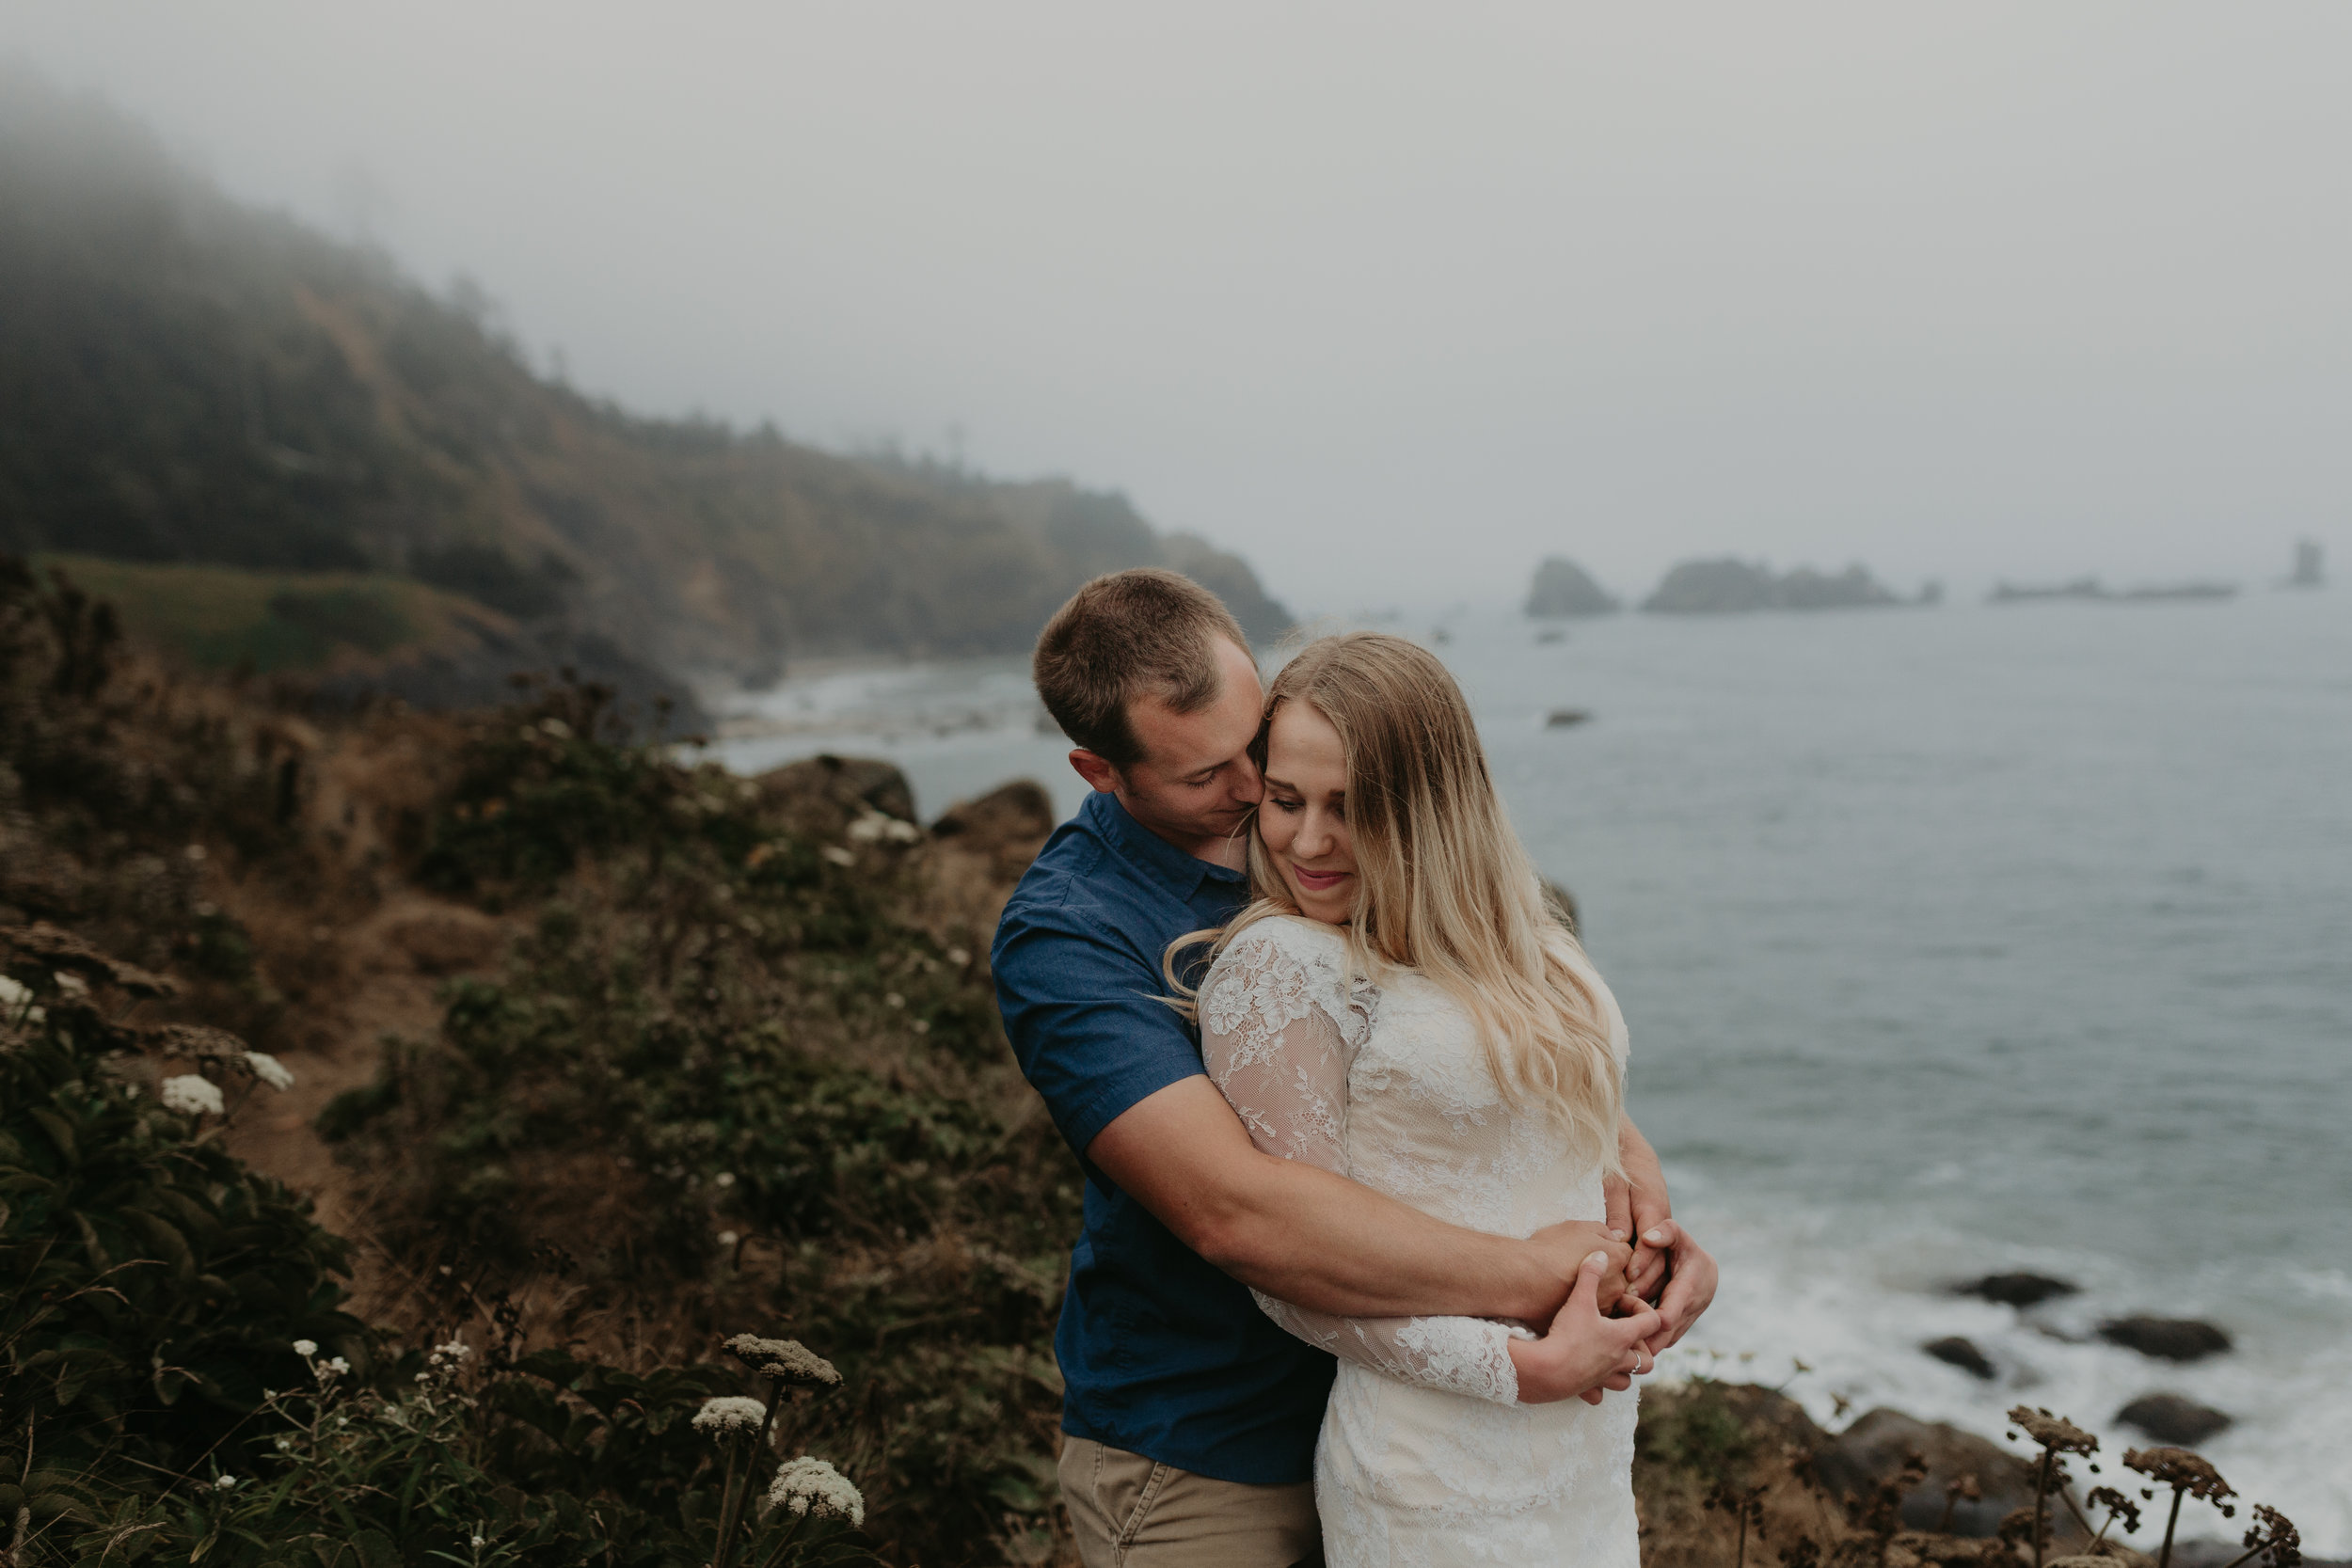 nicole-daacke-photography-oregon-coast-cannon-beach-indian-beach-ecola-state-park-adventurous-bridal-session-elopement-wedding-intimate-session-foggy-wedding-photographer-10.jpg